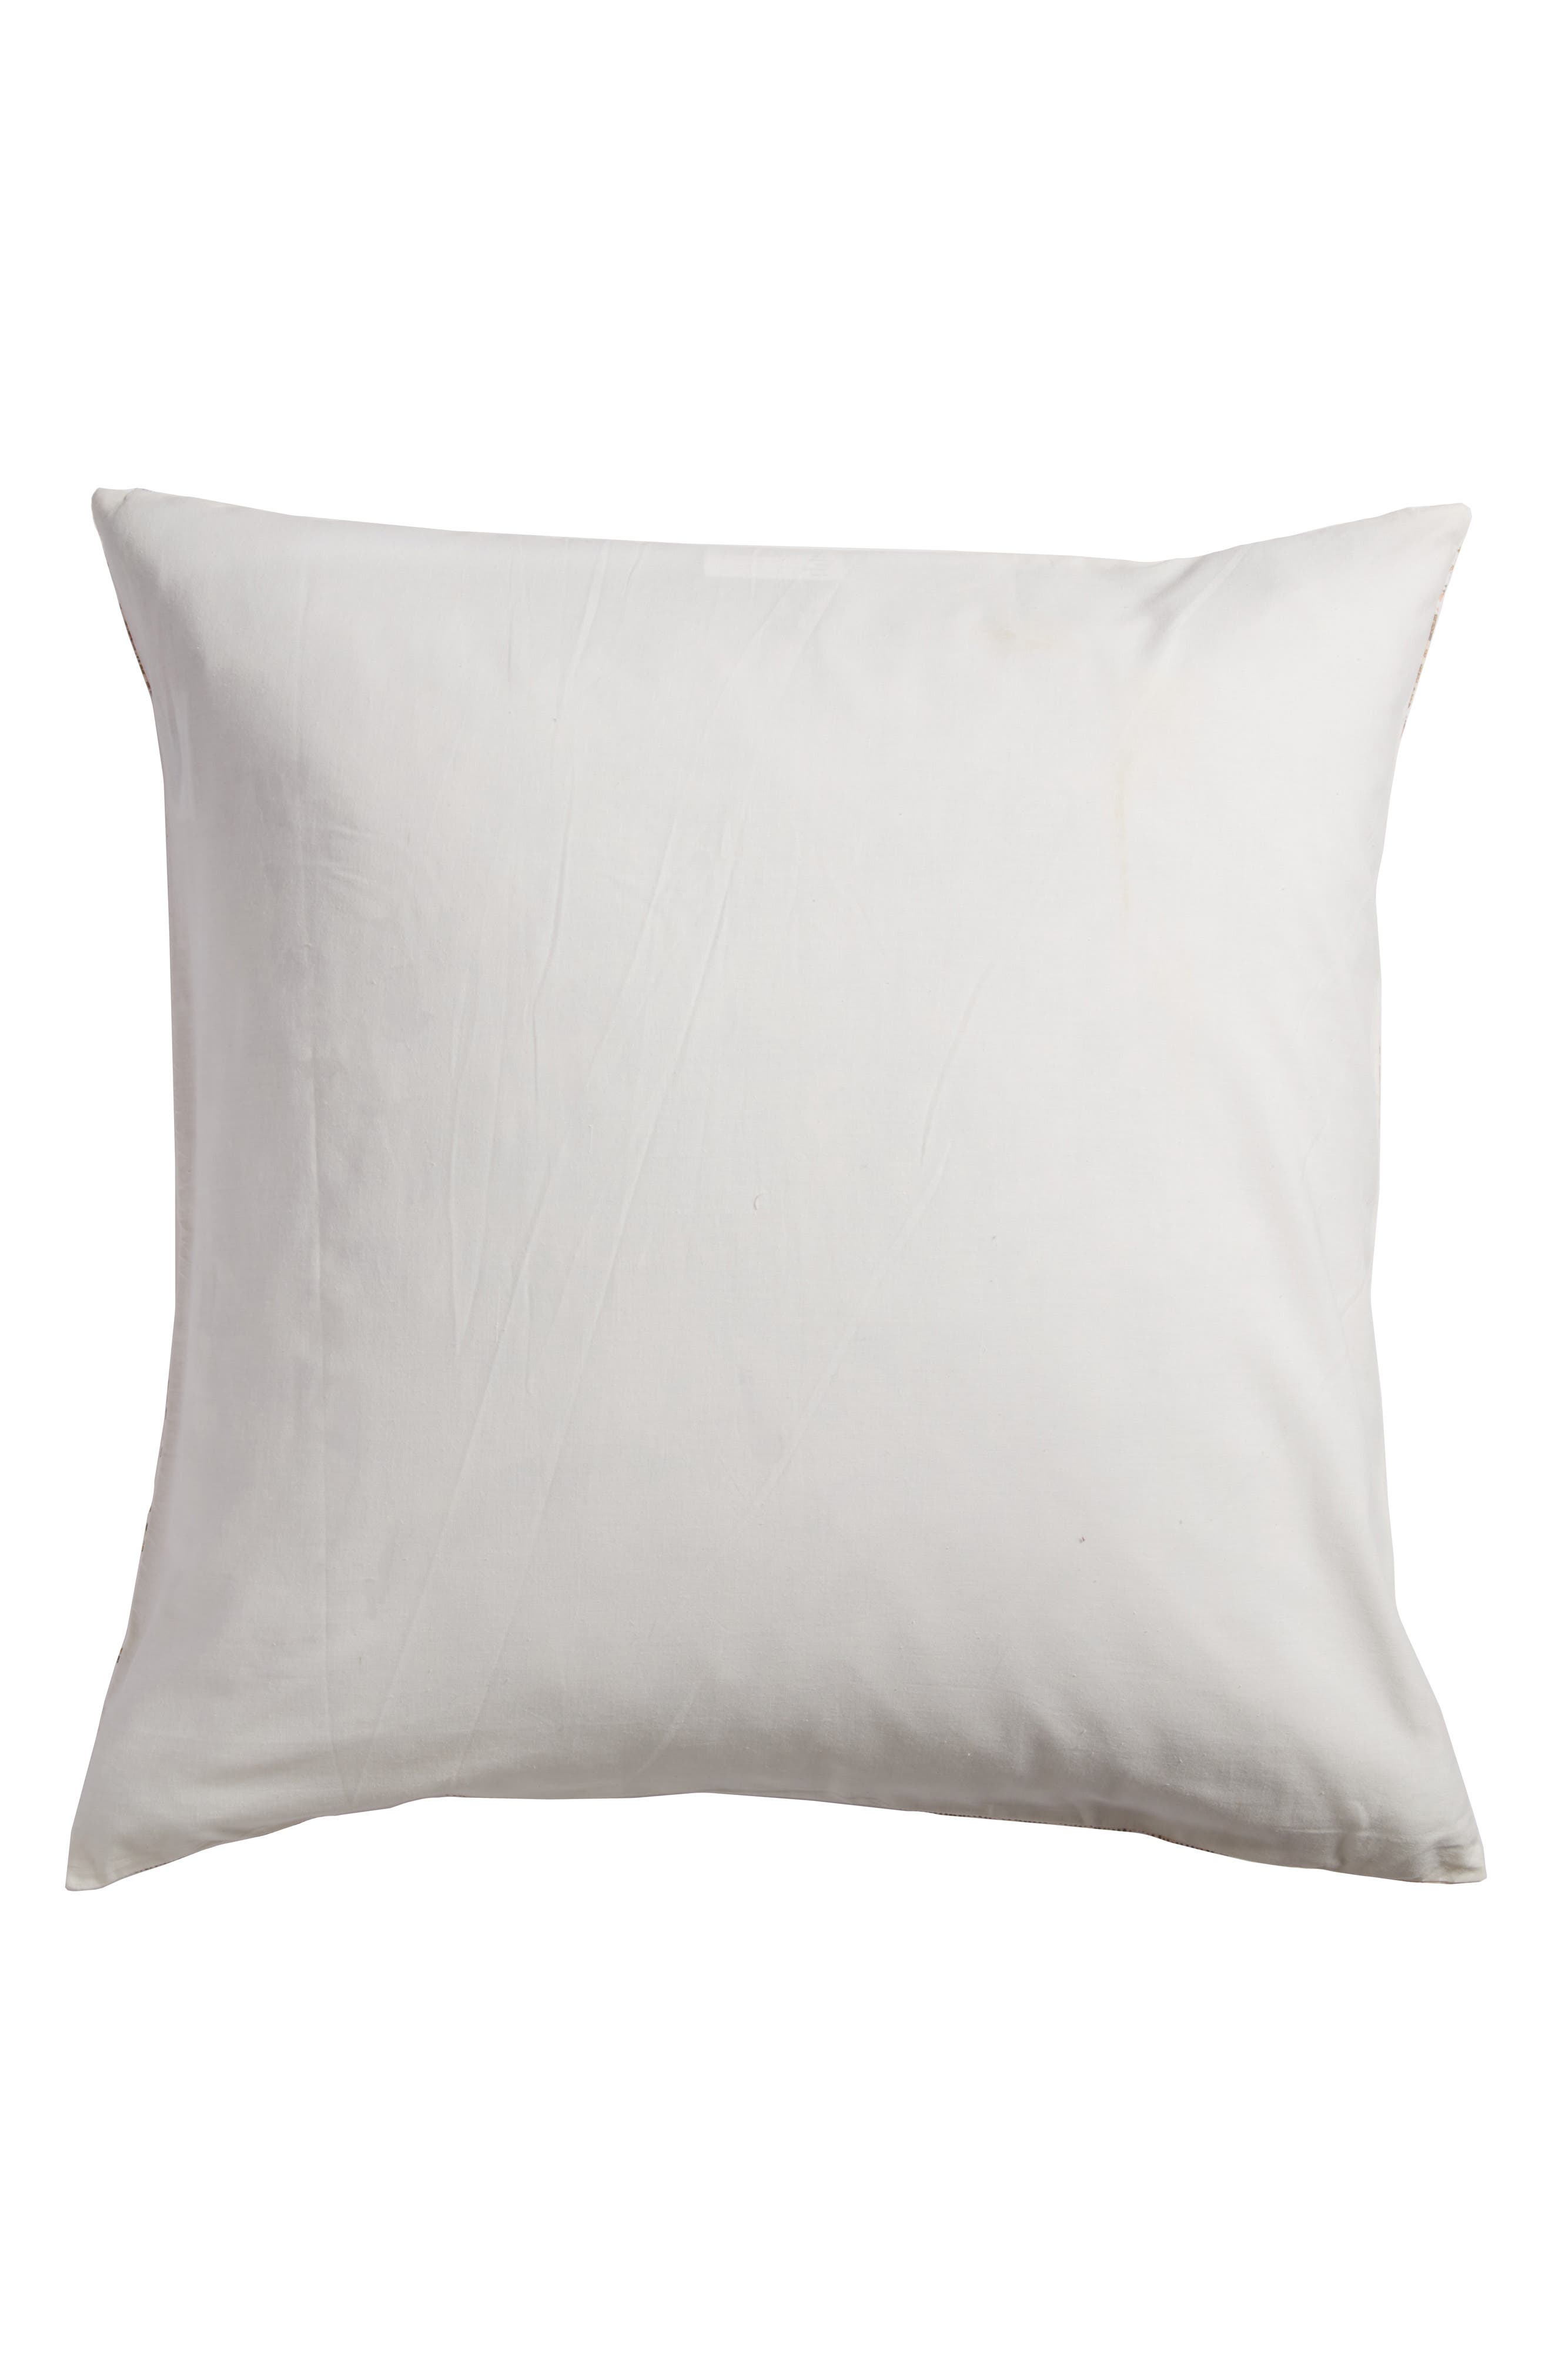 Malia Accent Pillow,                             Alternate thumbnail 3, color,                             Ivory